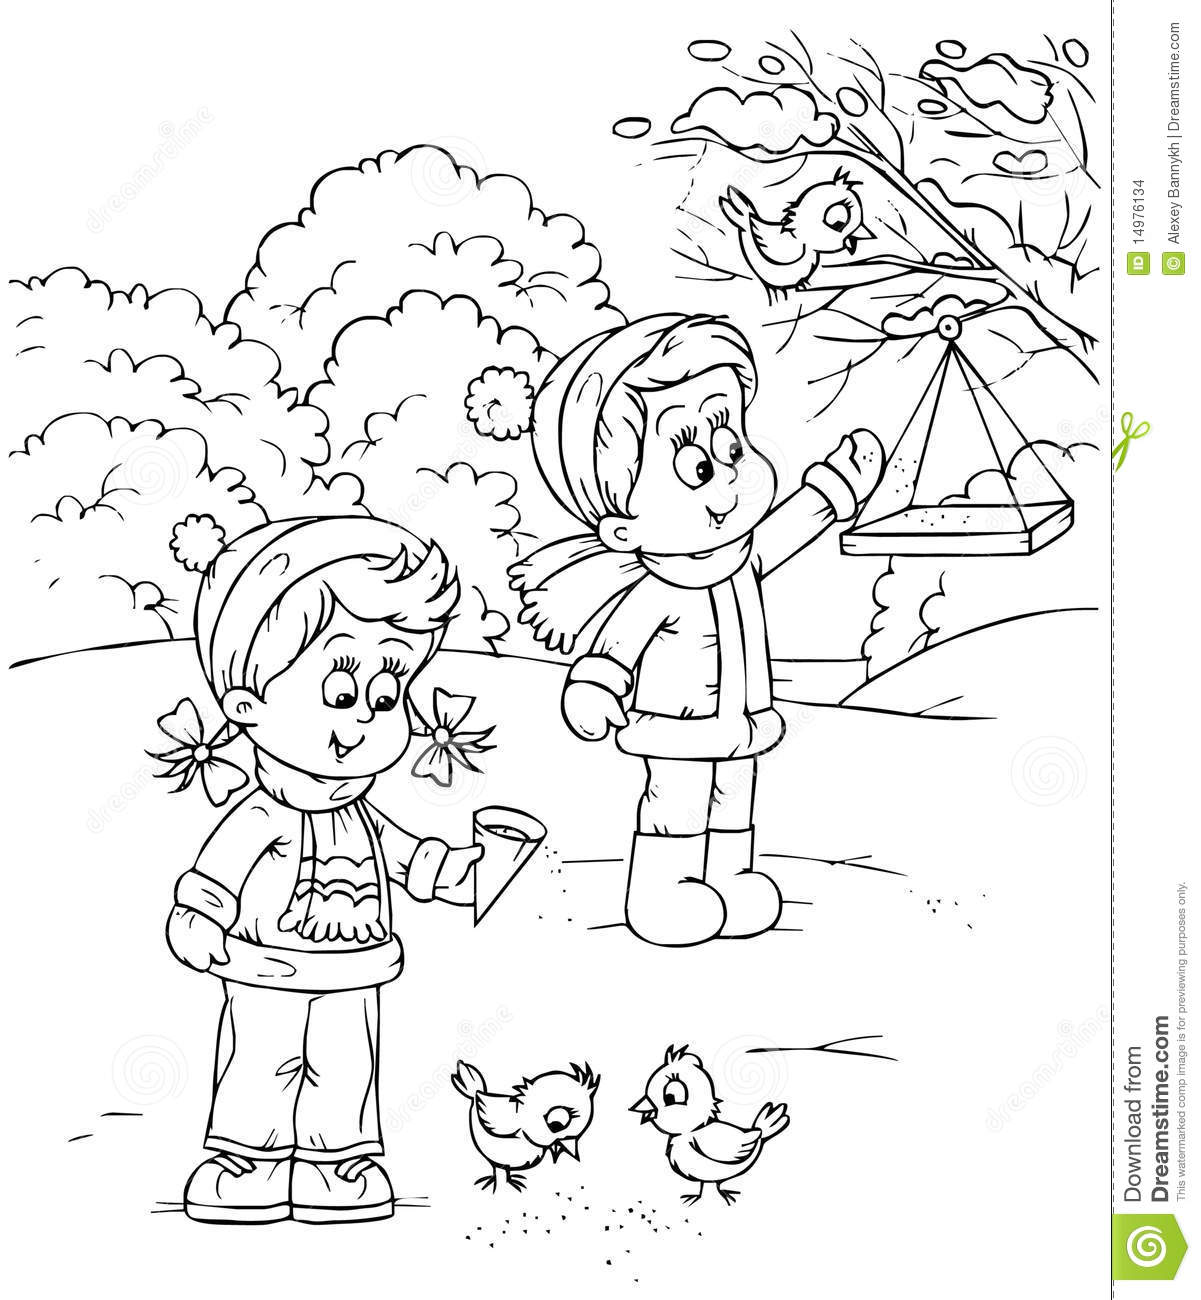 Children Playing In The Park Clipart Black And White 6